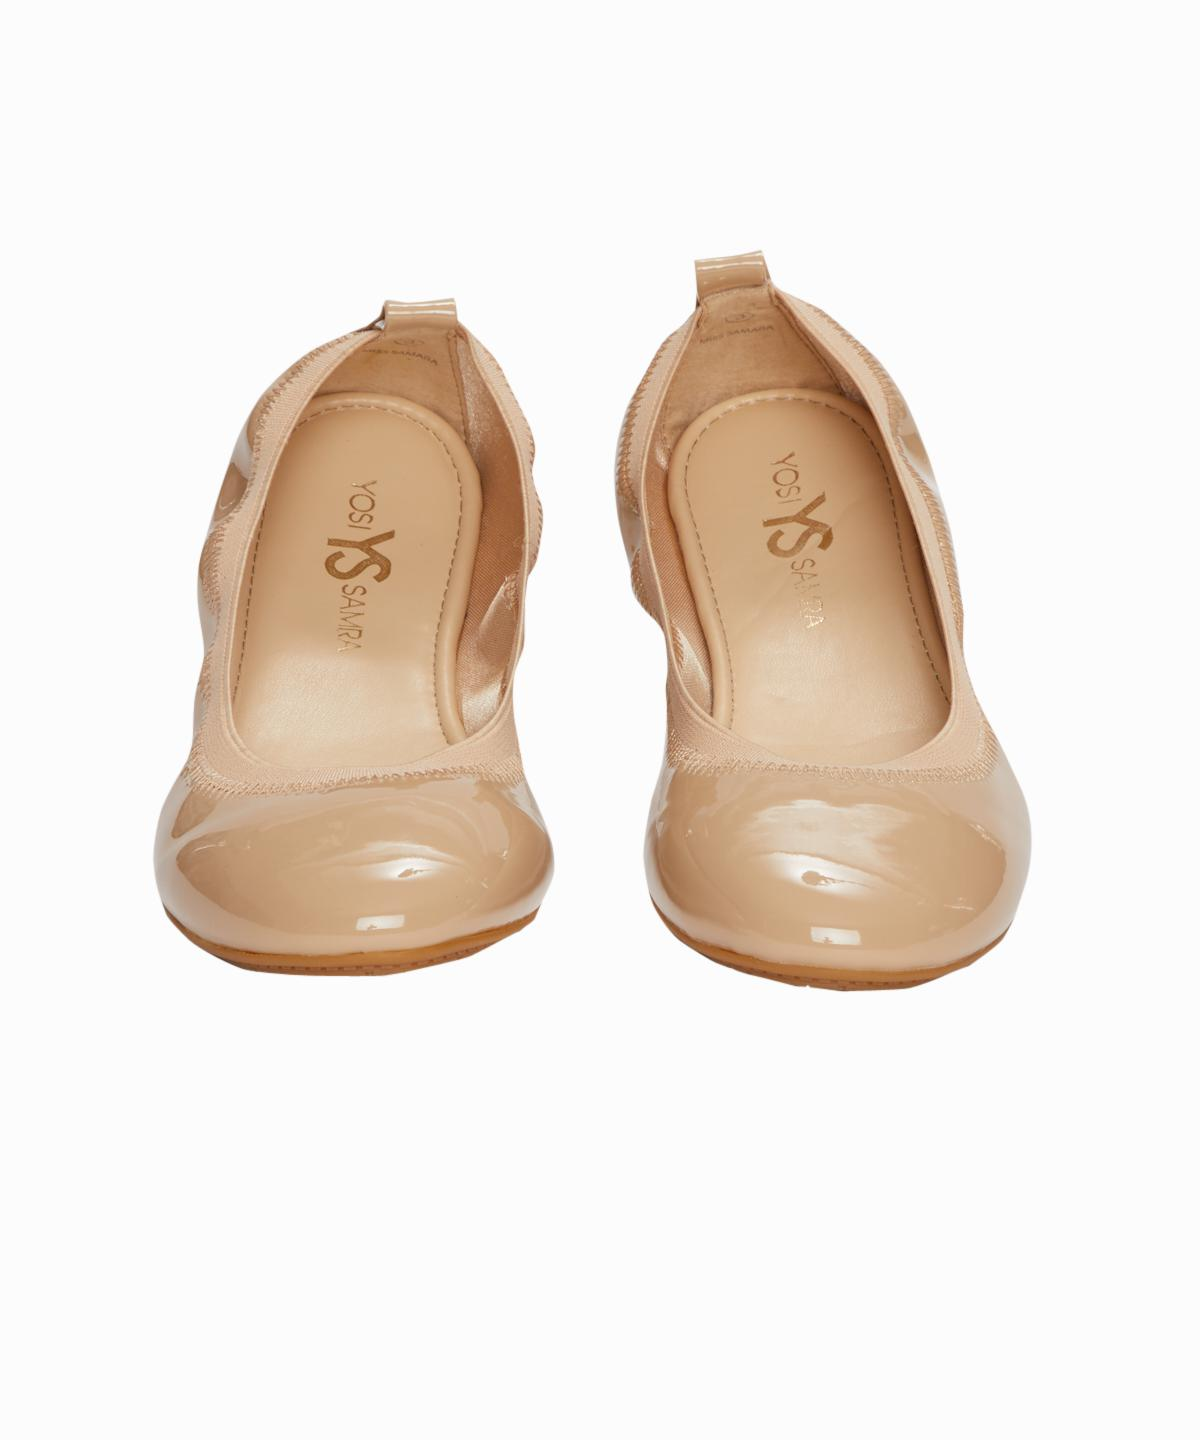 Beige Patent Leather Ballet Slippers